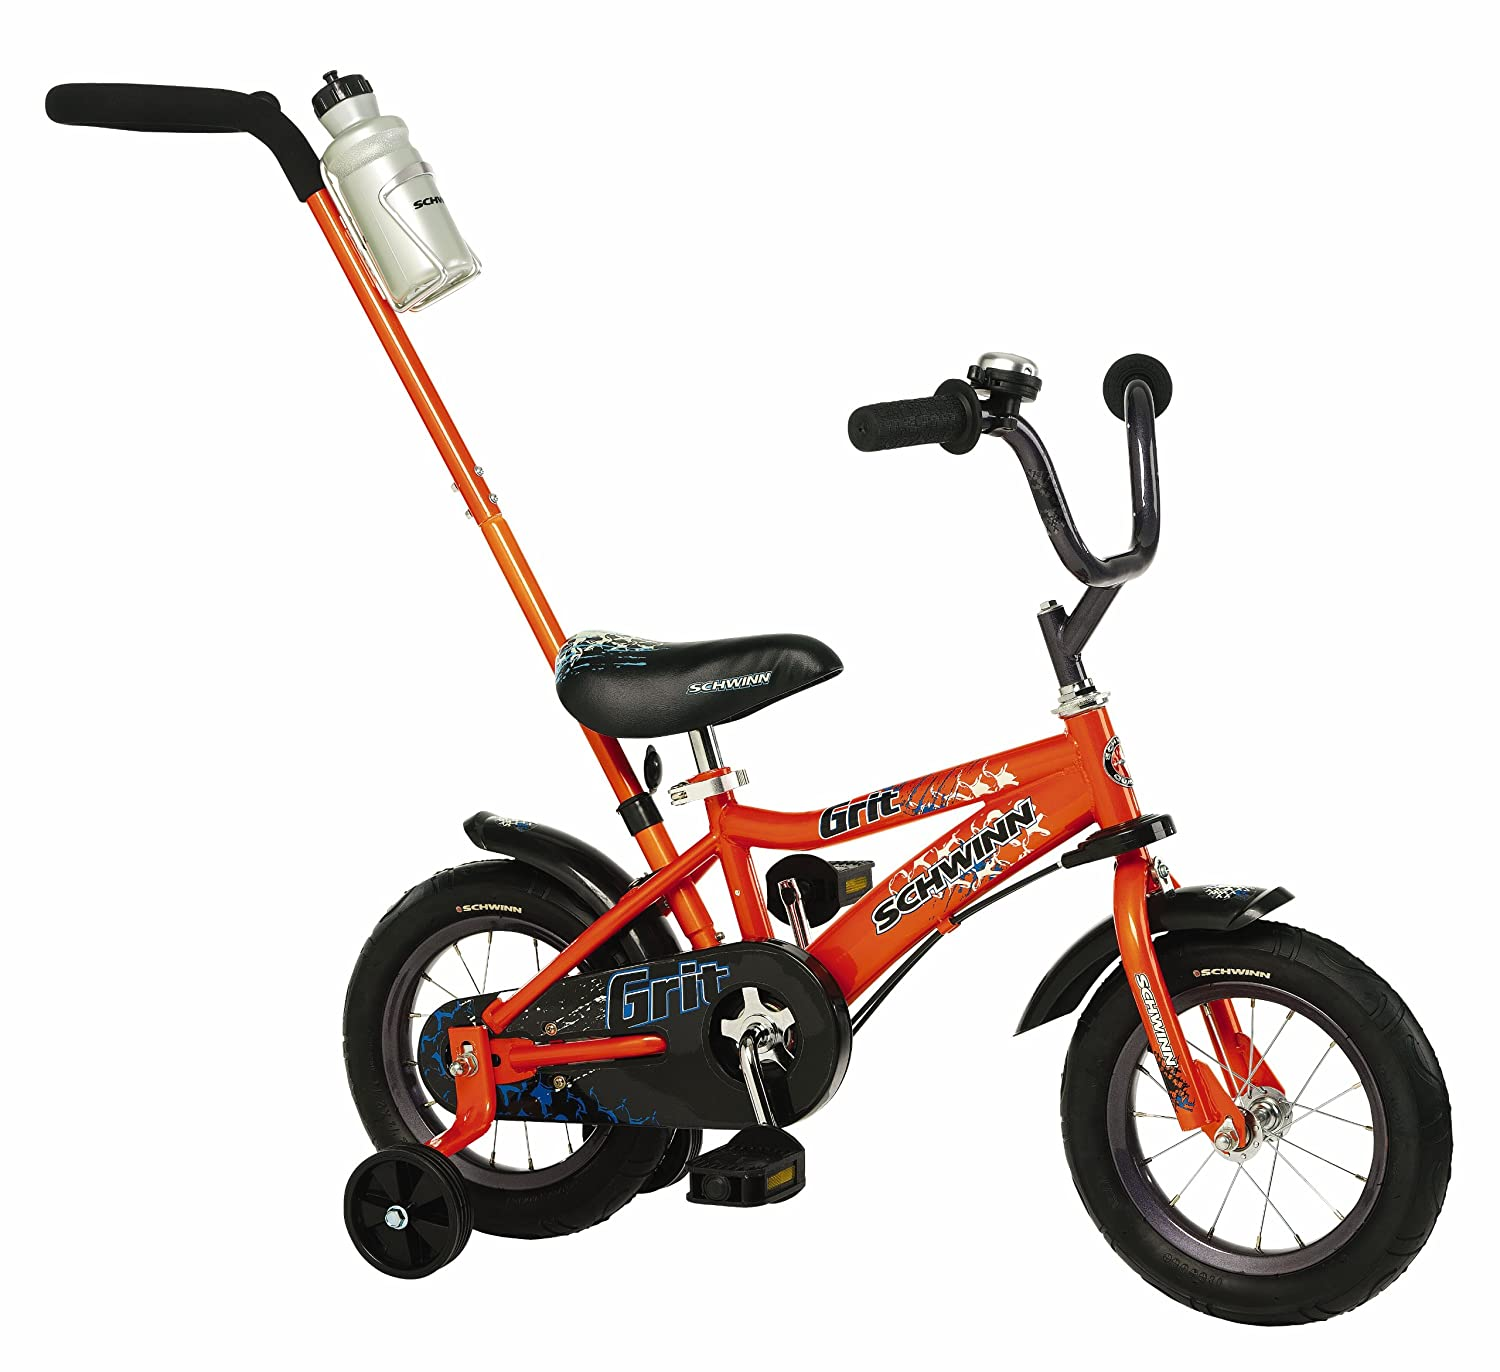 Schwinn Boys' 12-Inch Grit Bike, Orange